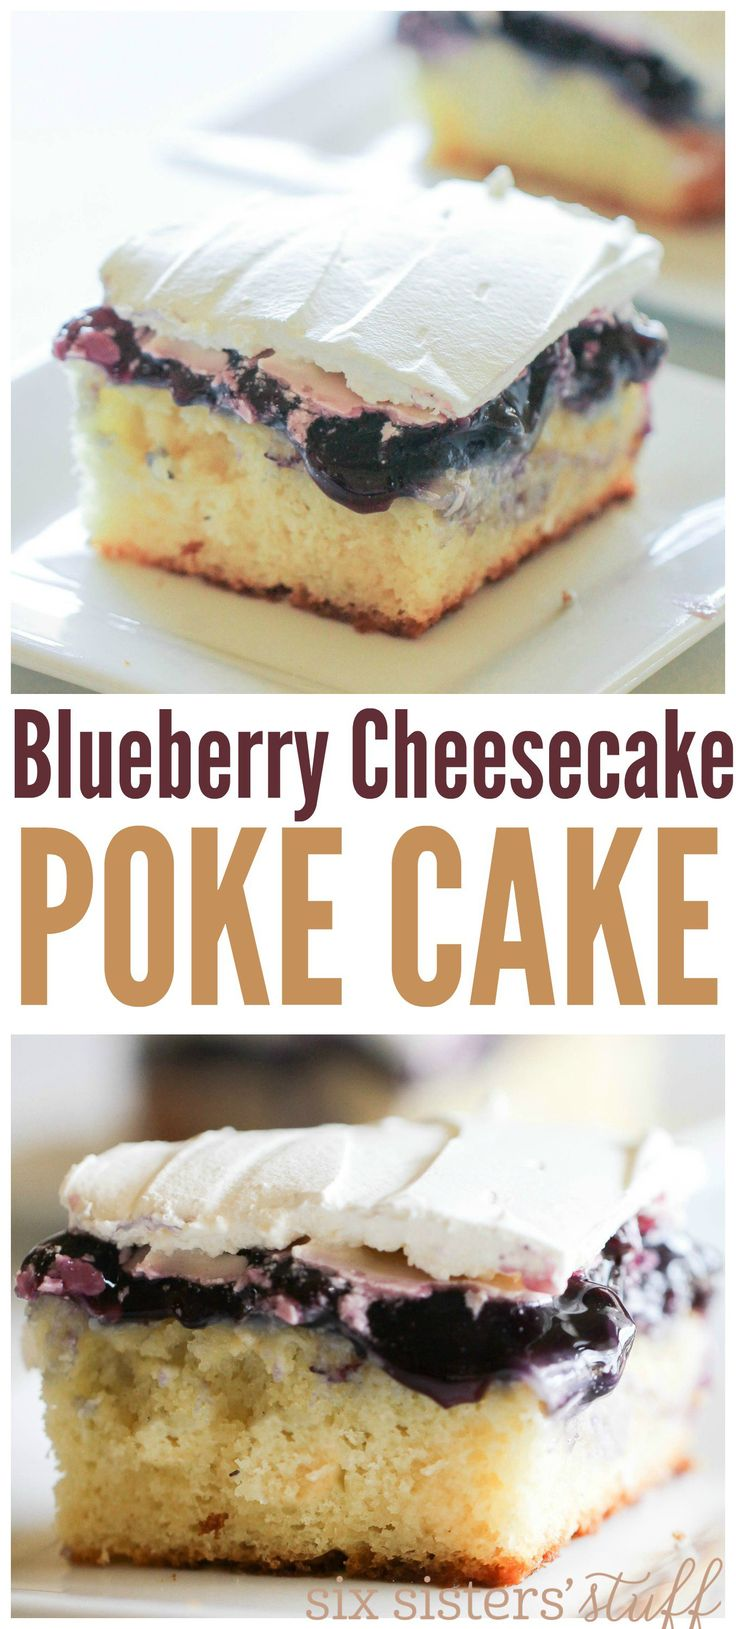 Blueberry Cheesecake Poke Cake from SixSistersStuff.com   Moist and AMAZING Cake Recipe   Best Dessert Recipe   Spring Desserts   Easter Recipe   Food for a Crowd